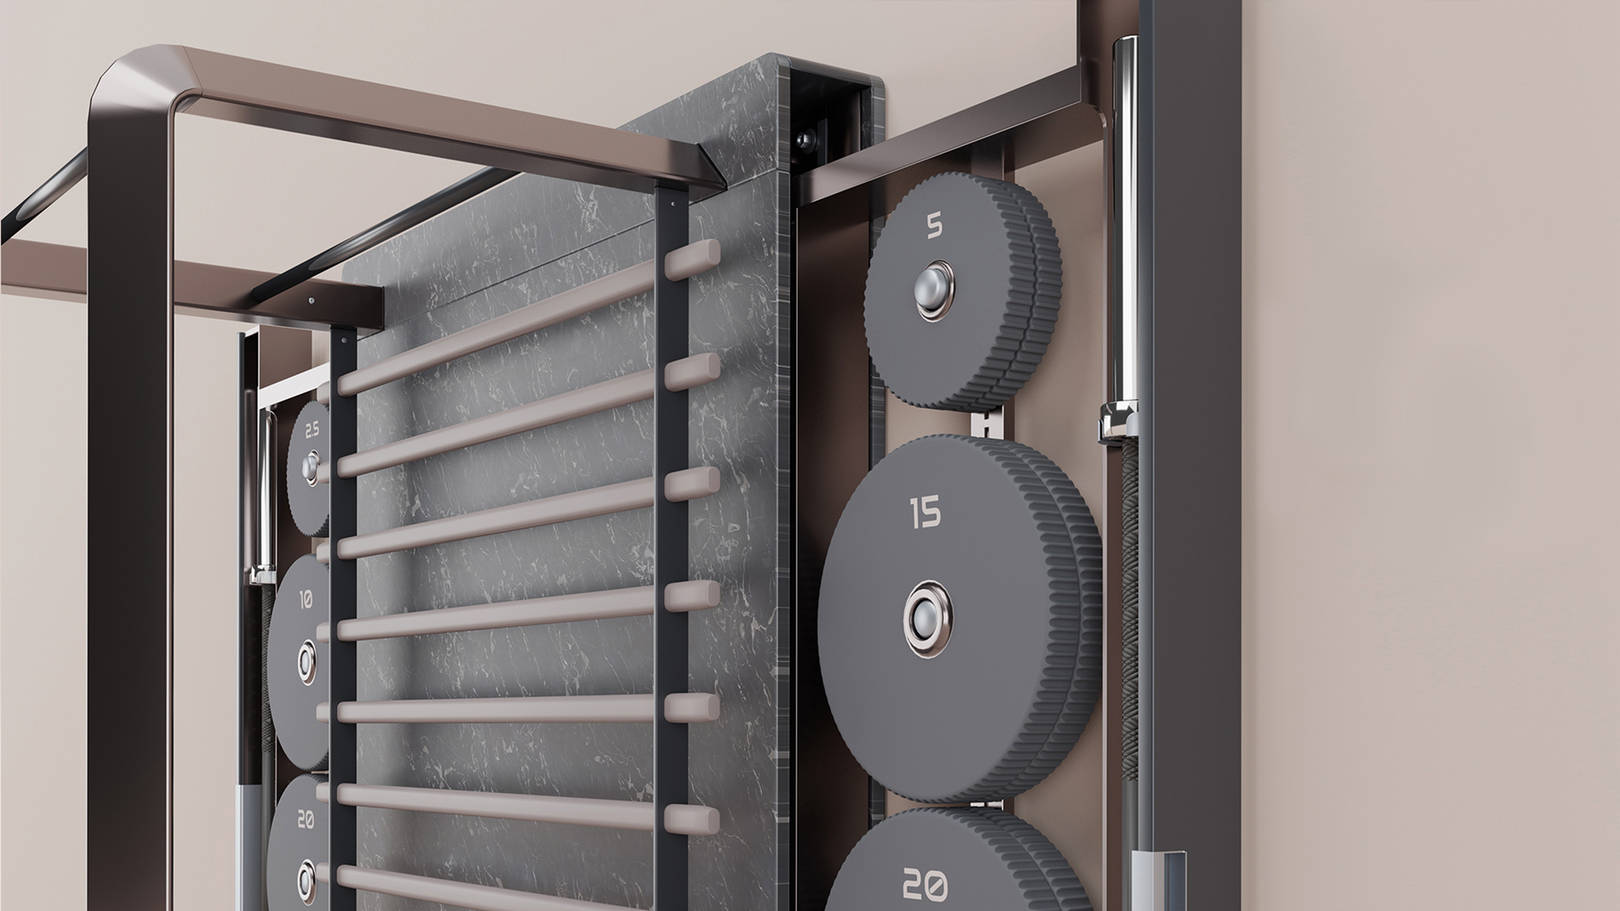 The heavy power rack has been transformed into an elegant, functional product. Safety and ease of use make the product useful for people of any age and level of physical fitness. The equipment takes up little space, which allows to place it in the interior of an office, apartment or private house. It is also suitable for hotels, fitness clubs and spas, whose customers value a unique and exclusive design.